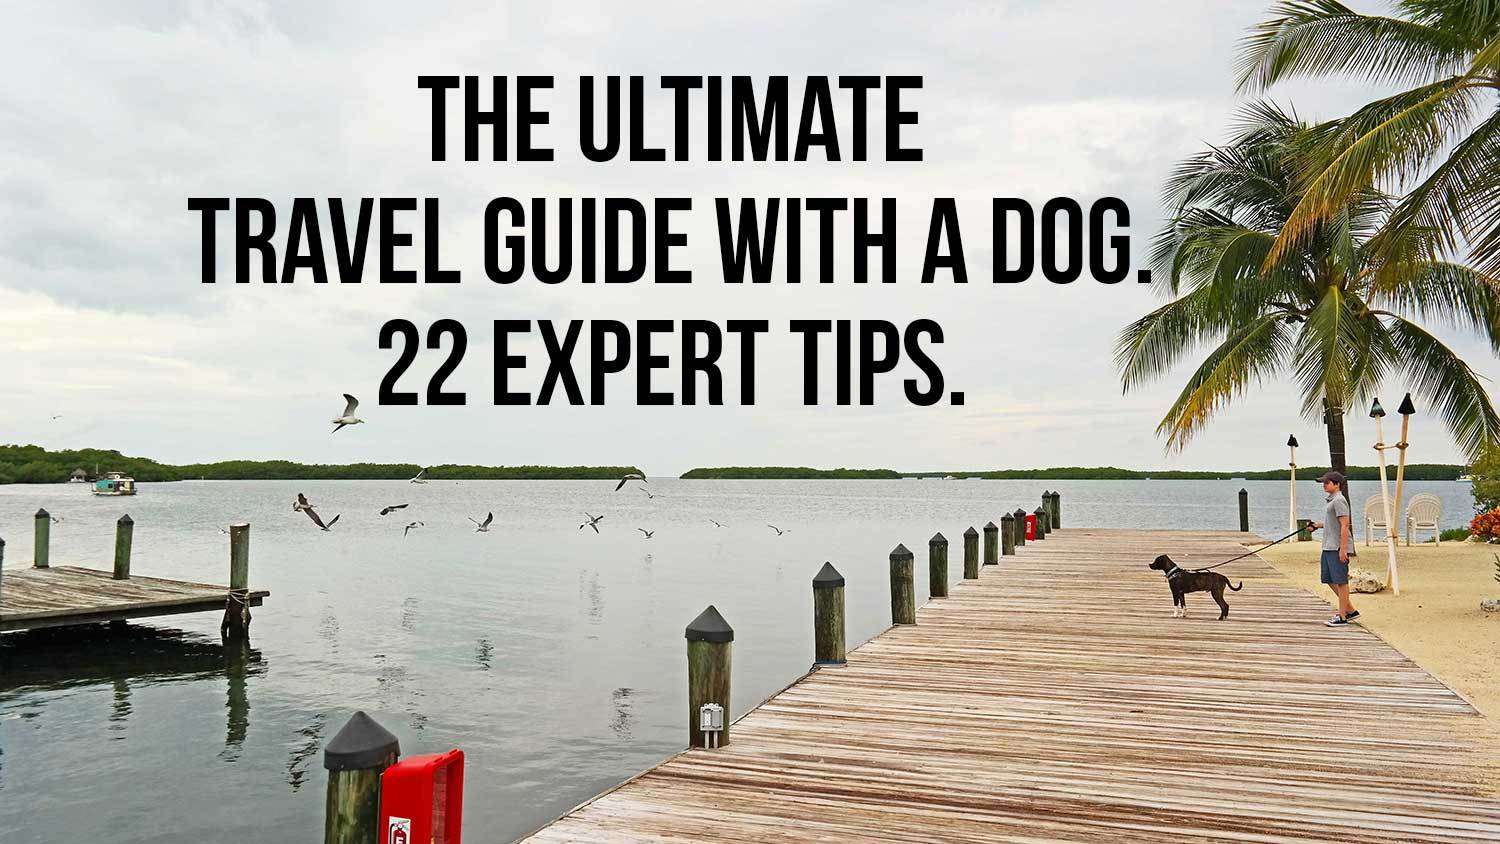 The ultimate travel guide with a dog: 22 expert tips!